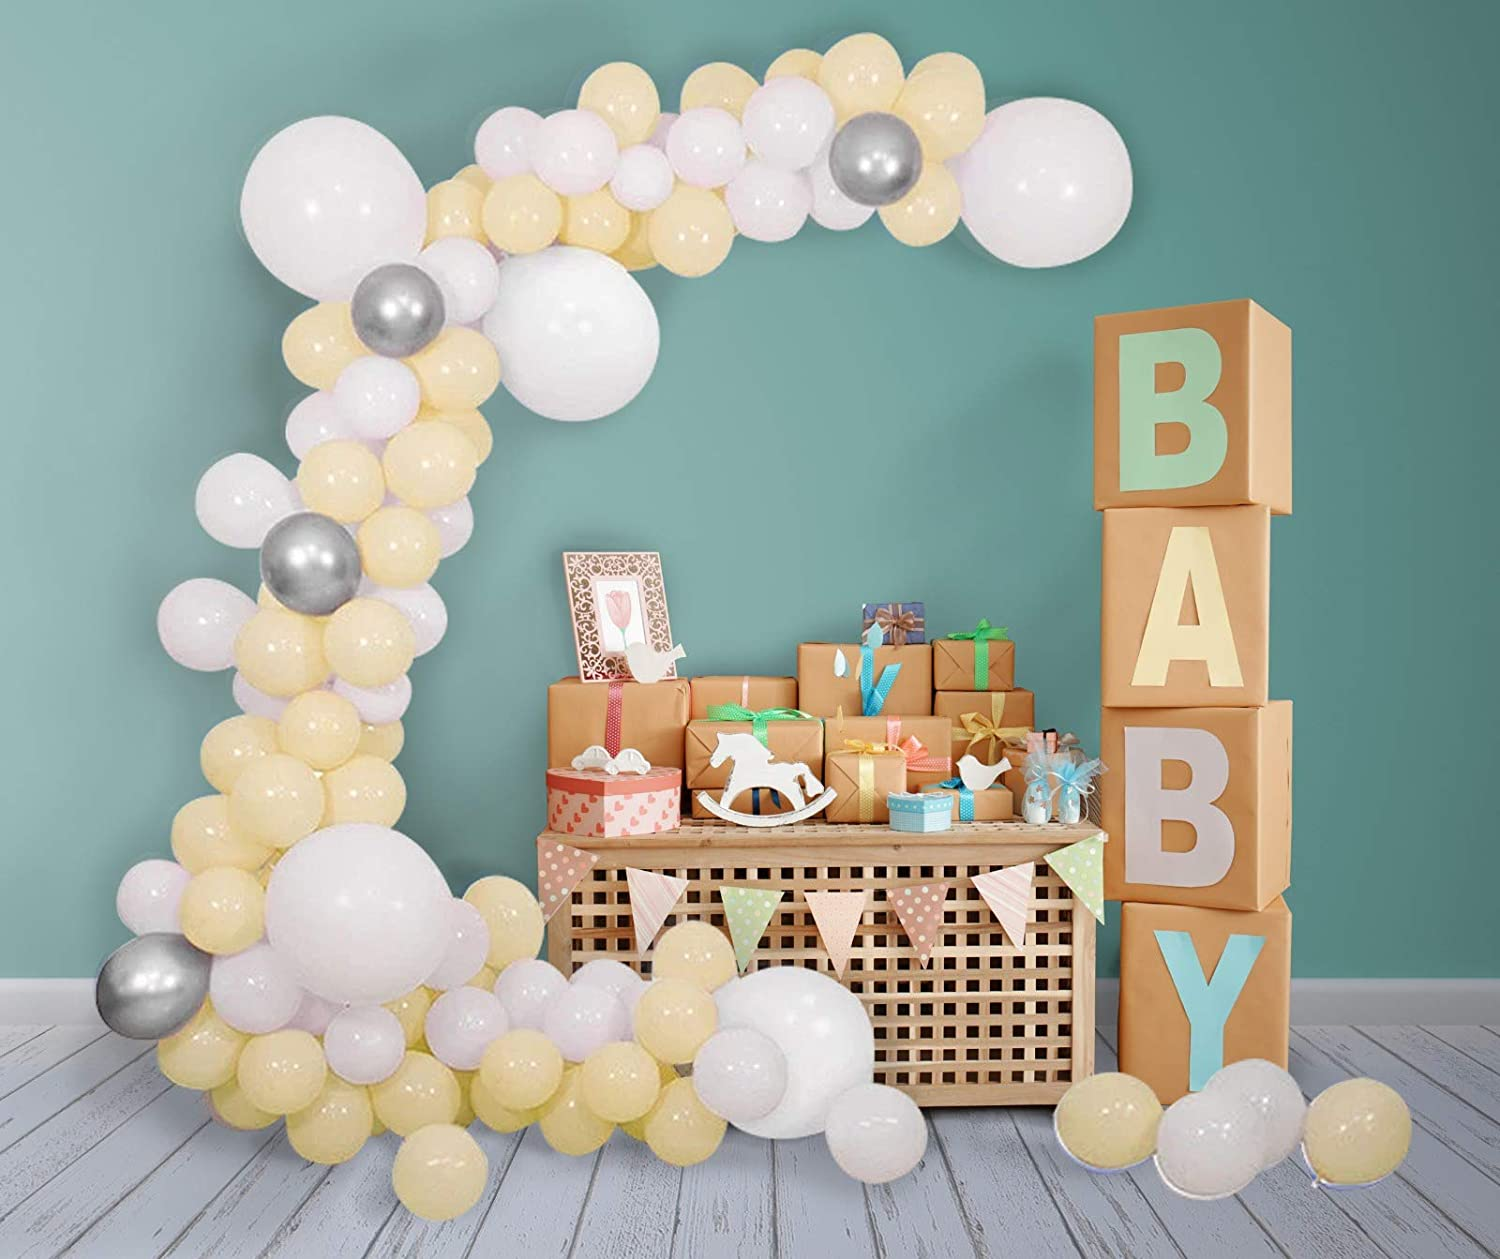 Get Your Hands On The Best Balloon Garland Arch Kit